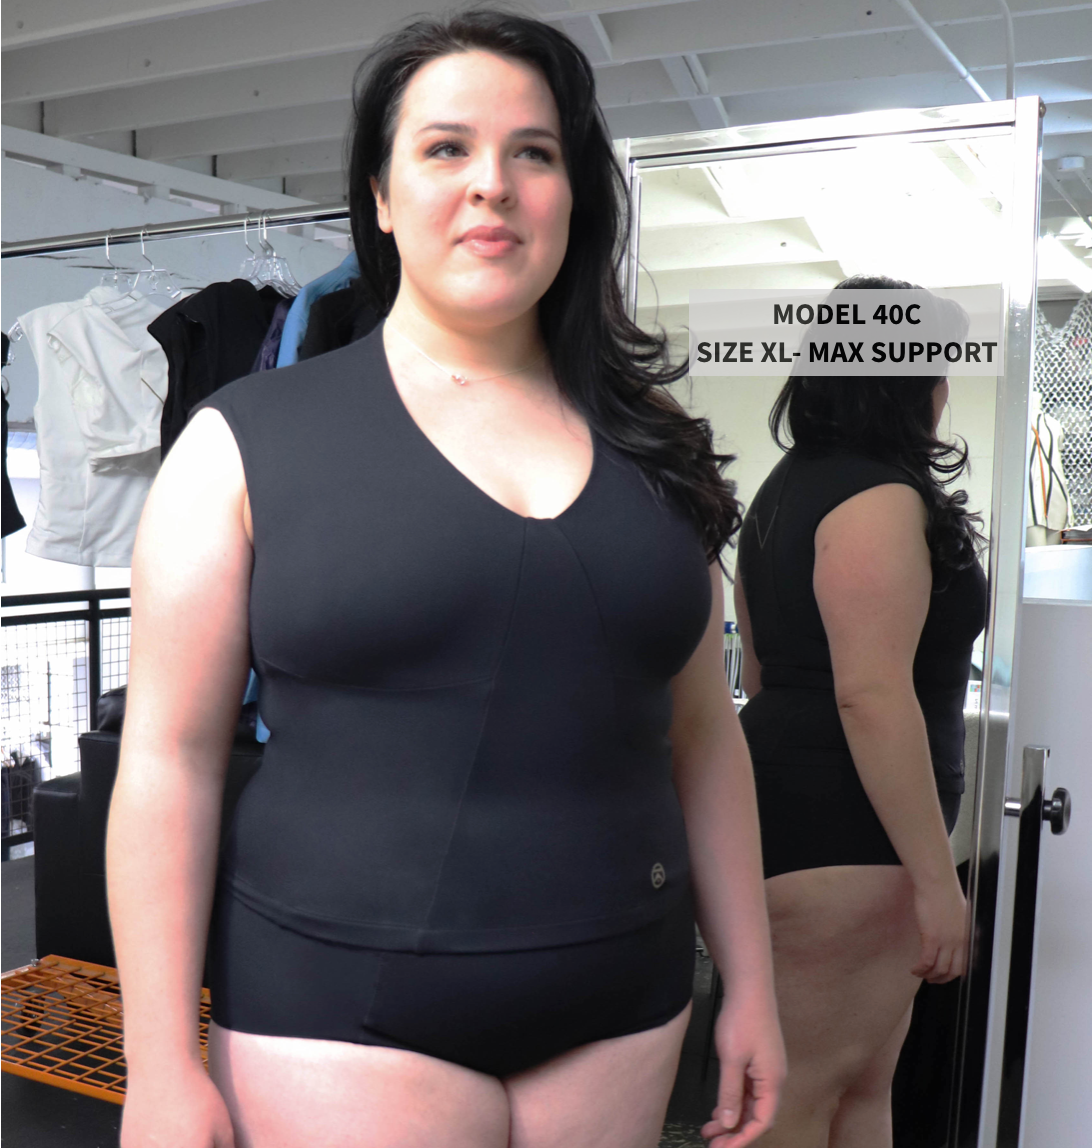 Model 40C wearing XL in the top